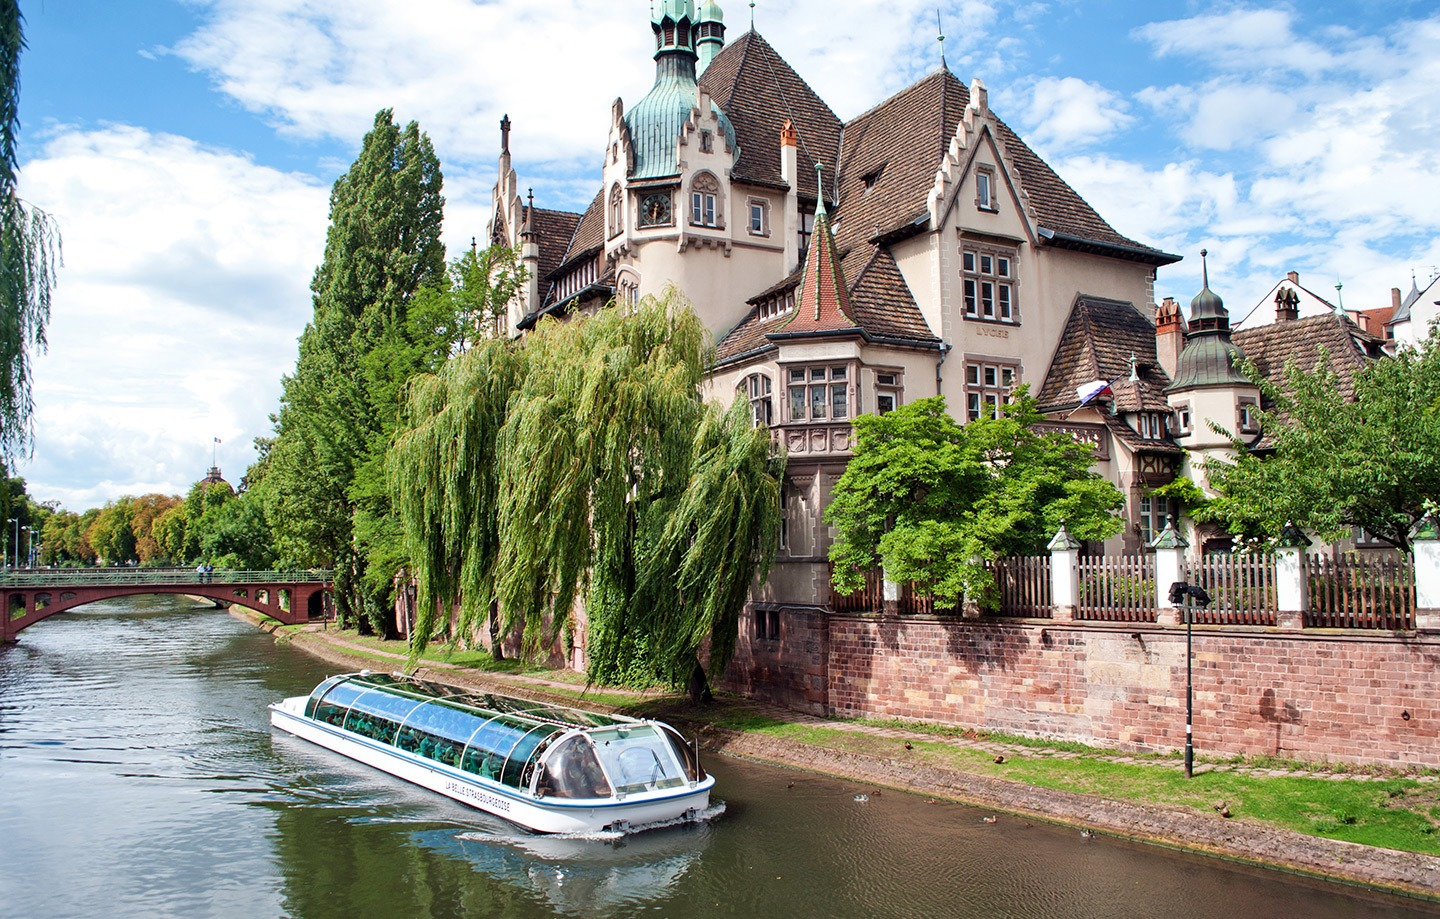 A boat trip on the canals in Strasbourg